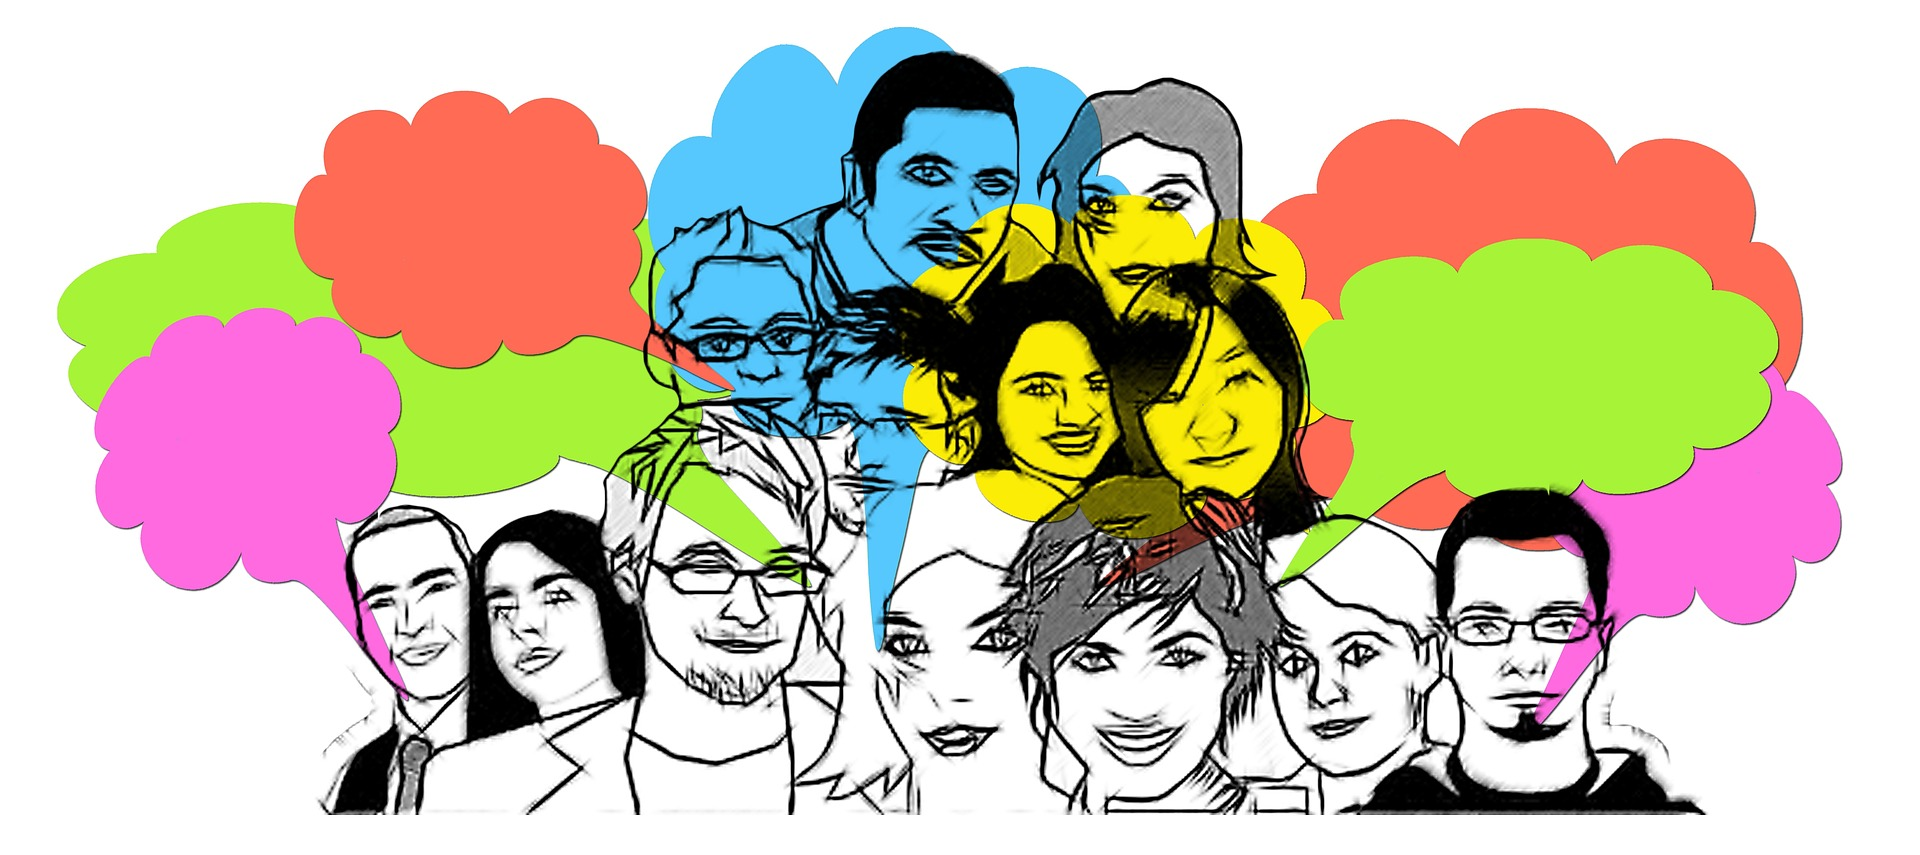 sketched faces with color splash